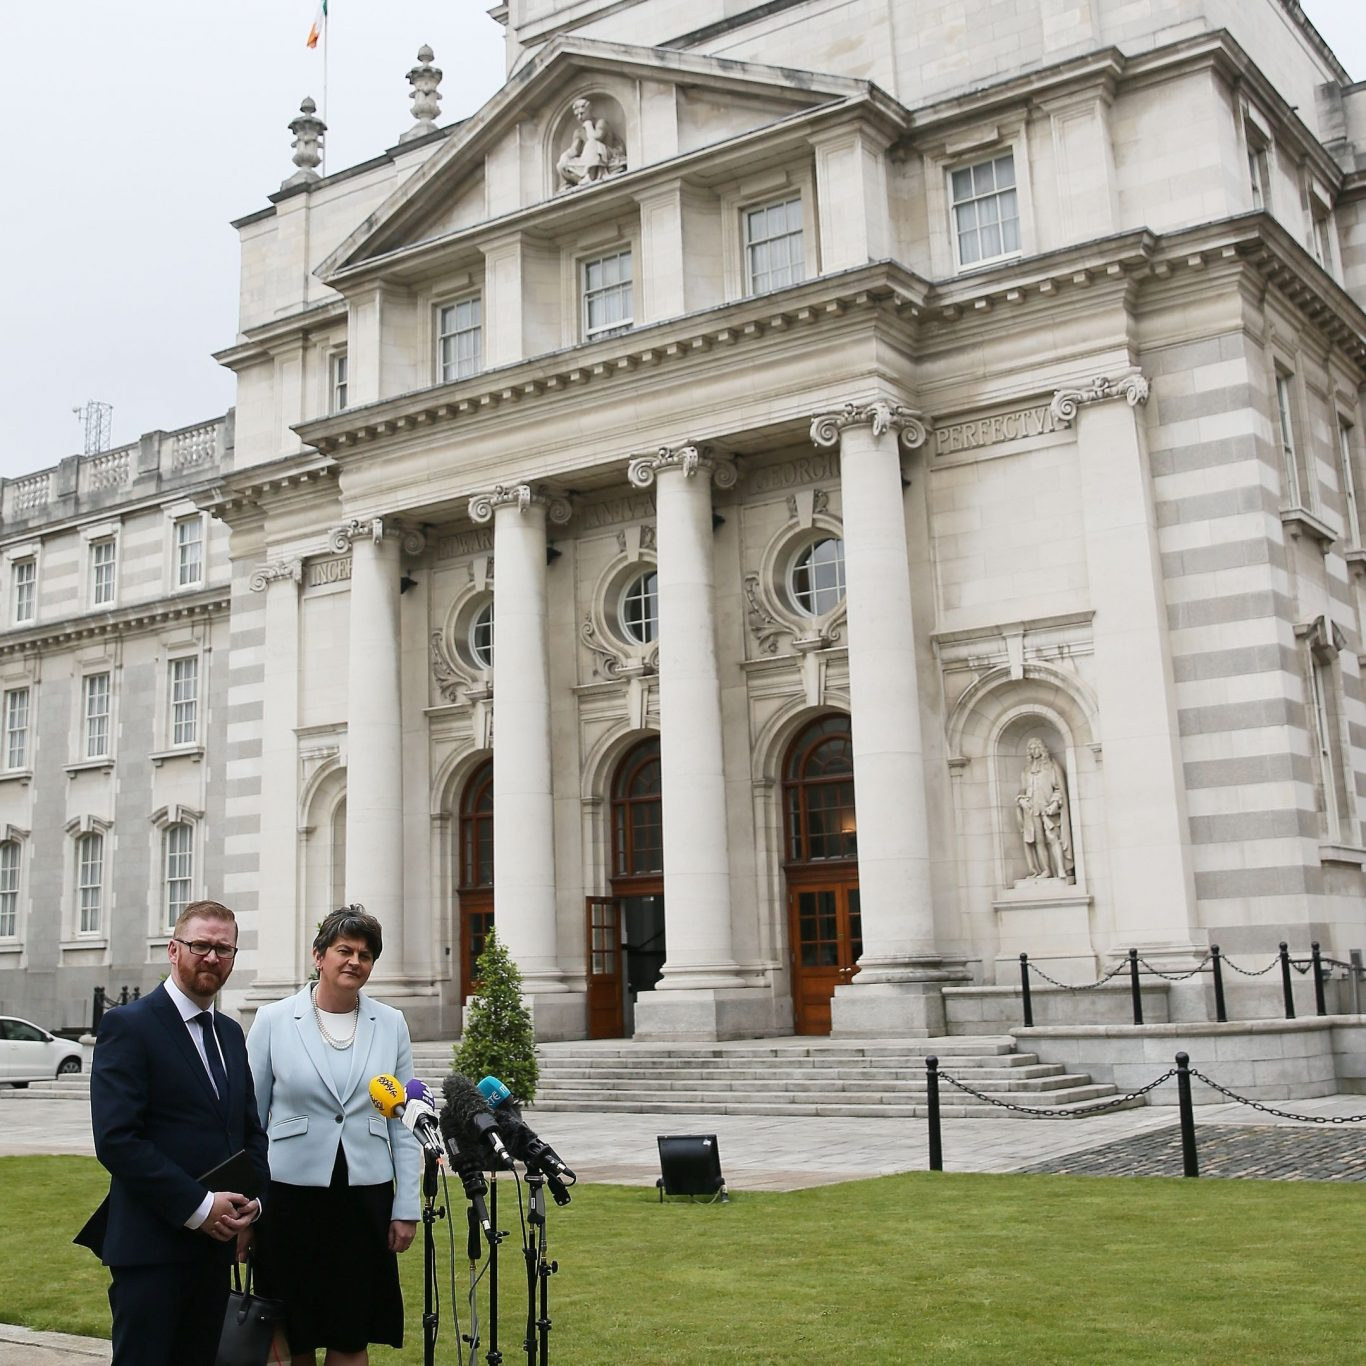 DUP leader Arlene Foster and DUP's Simon Hamilton outside Government Buildings in Dublin (Brian Lawless/PA)